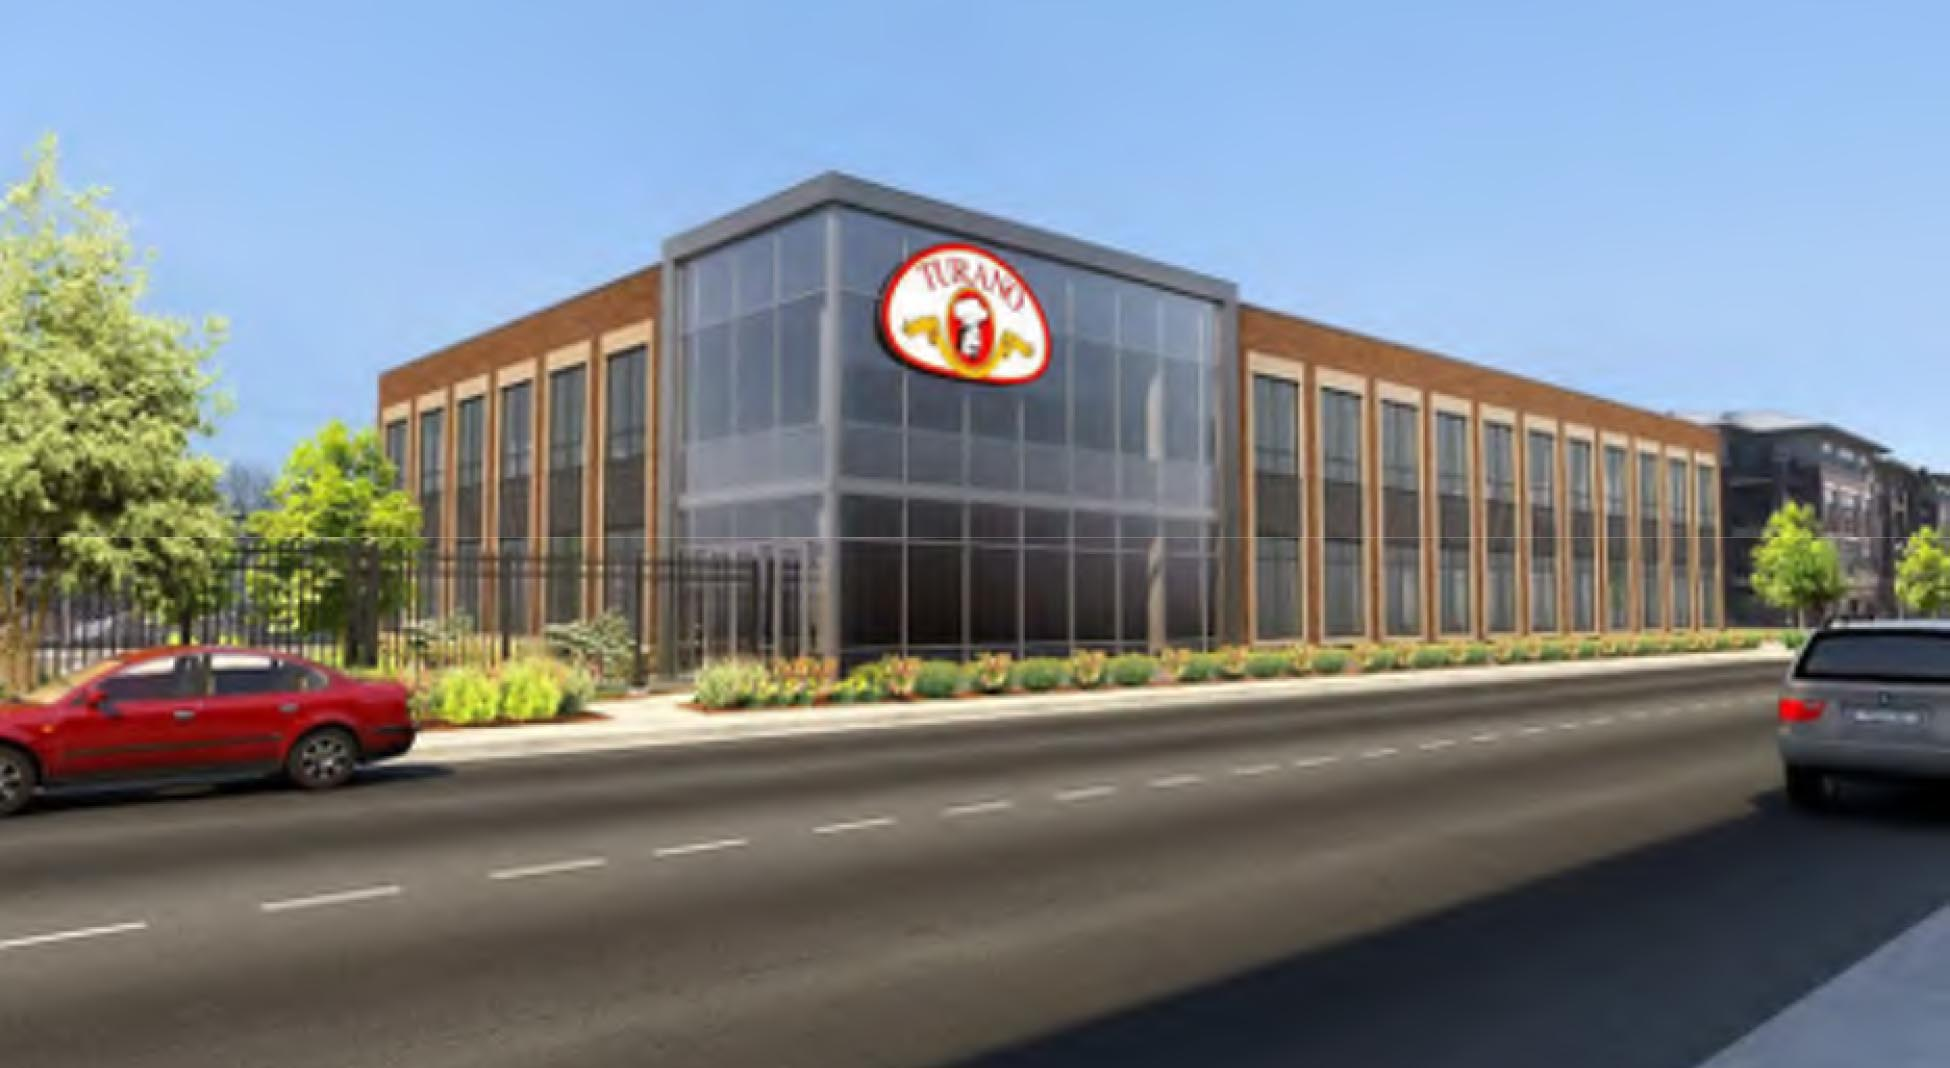 Rendering of Turano Bakery Office development